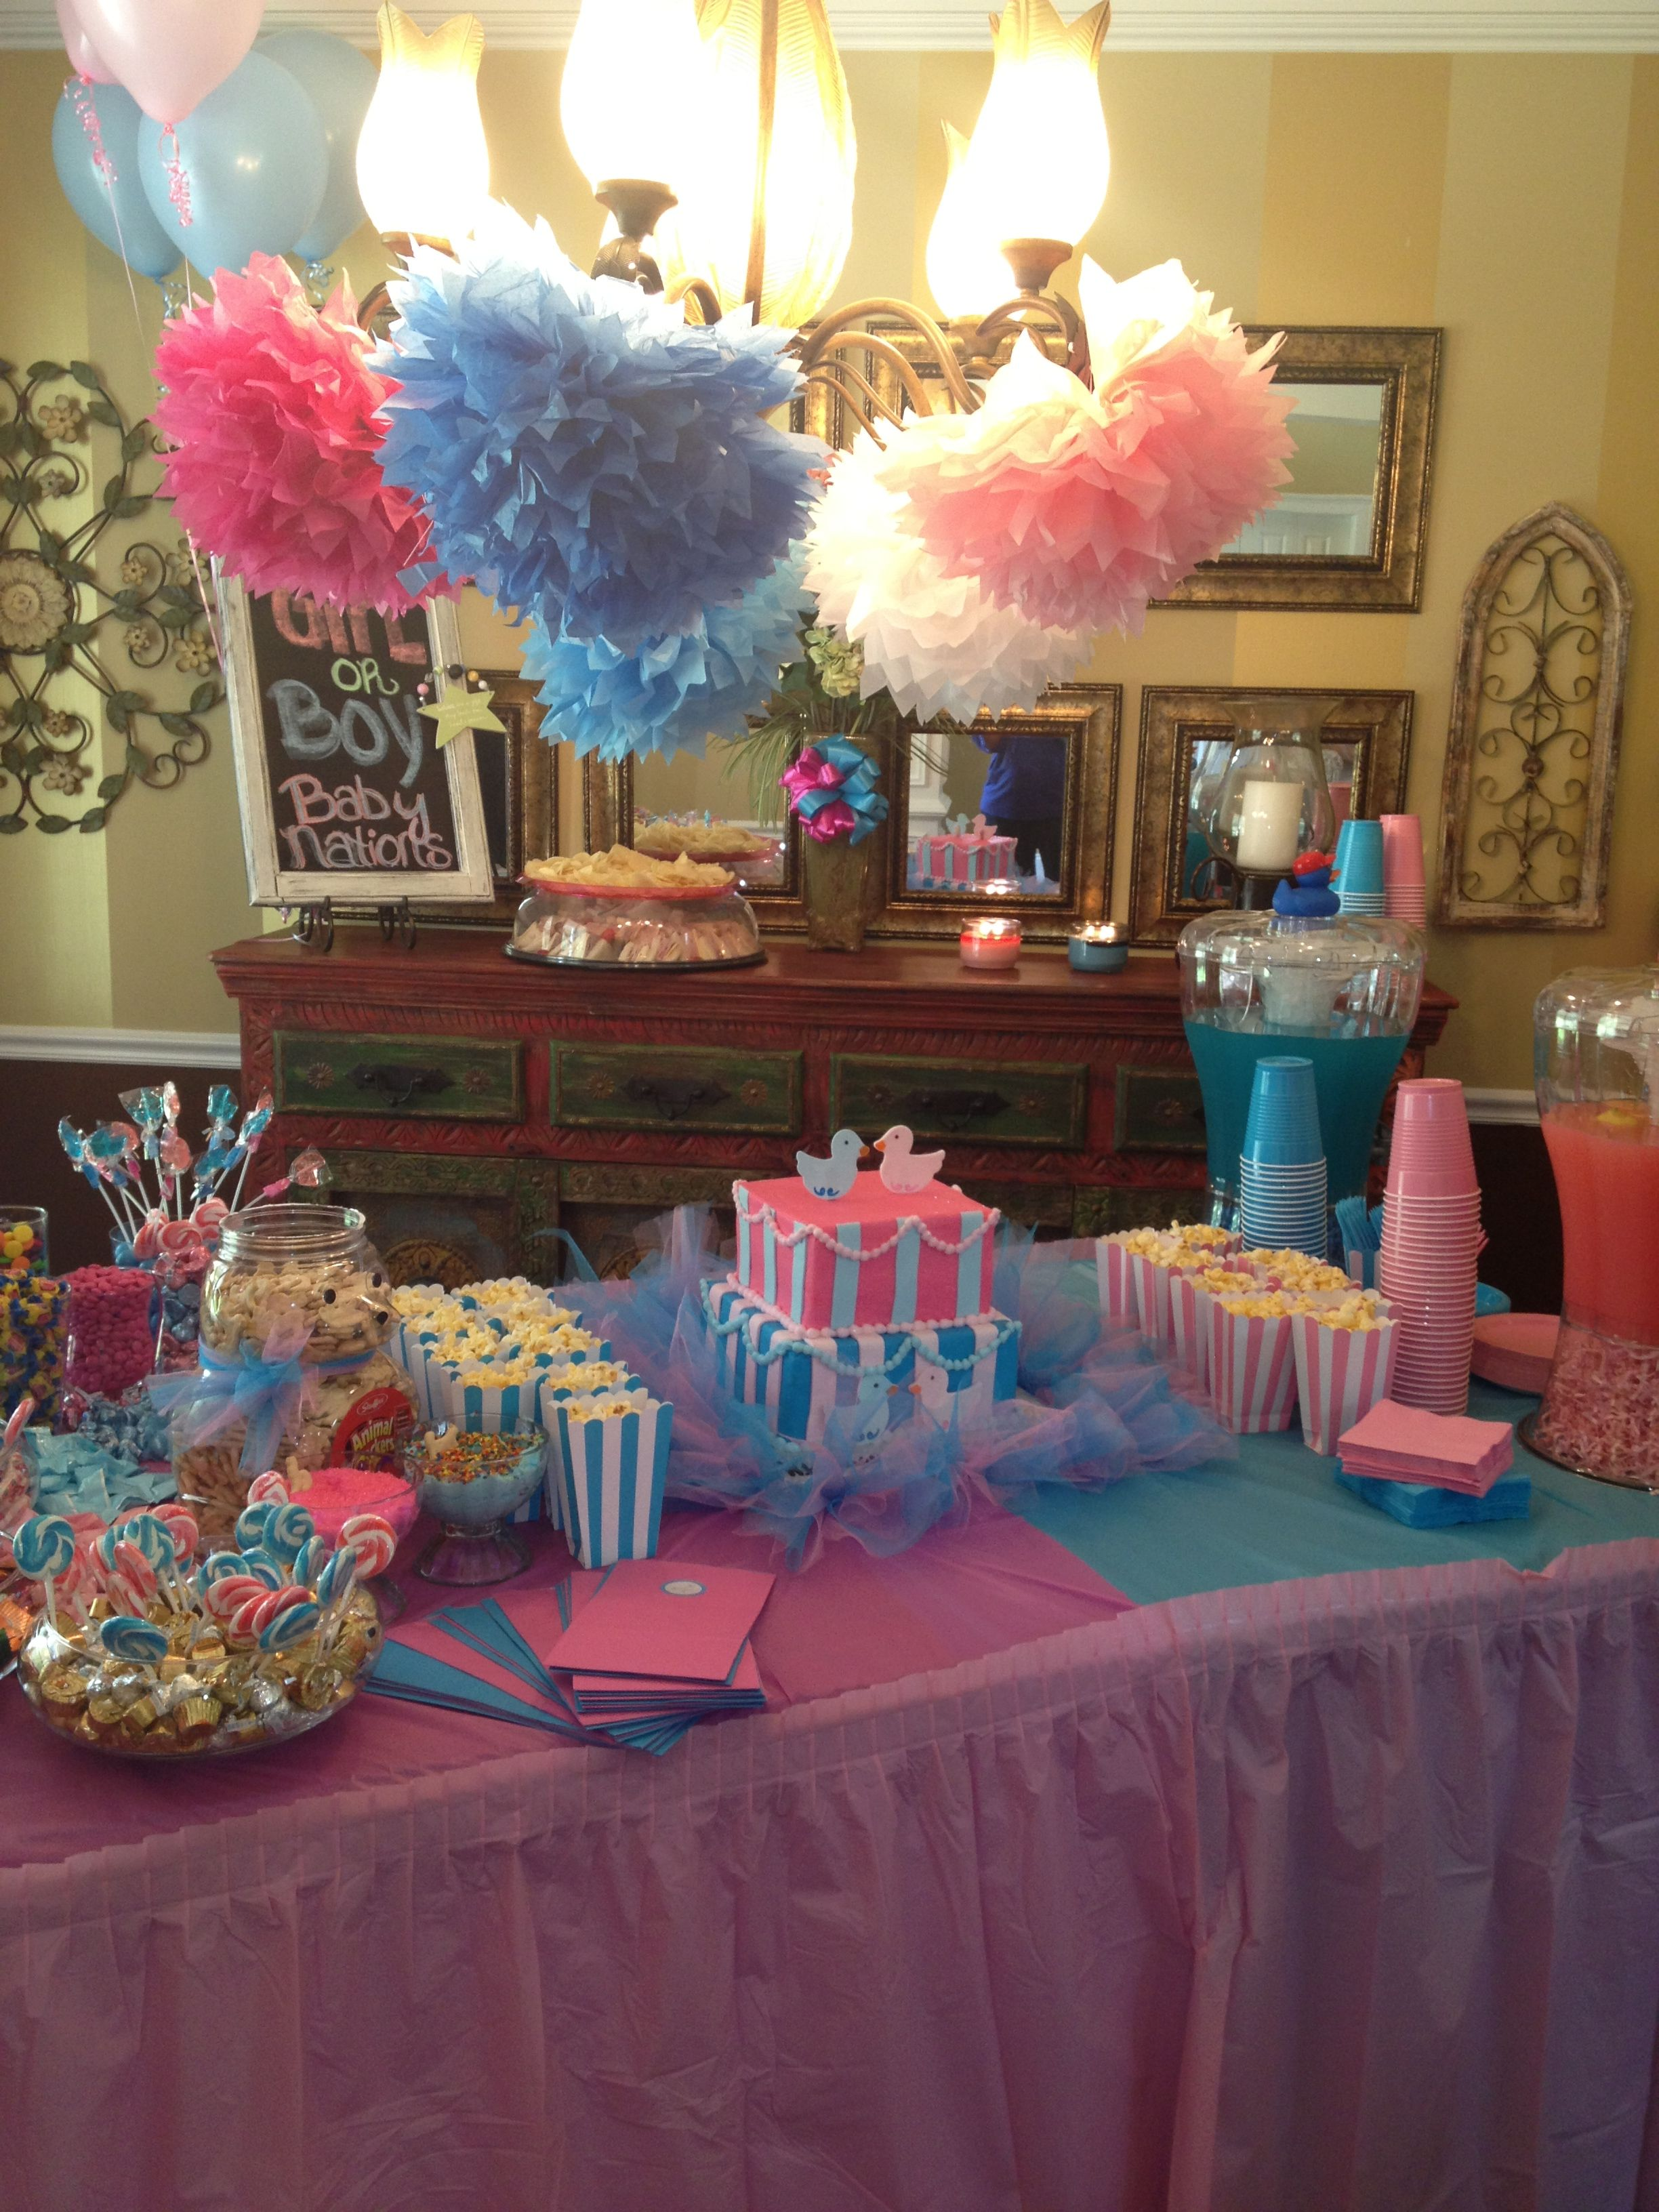 Pin By Bethany Nations On My Pins Gender Reveal Party Decorations Gender Reveal Decorations Gender Reveal Party Food